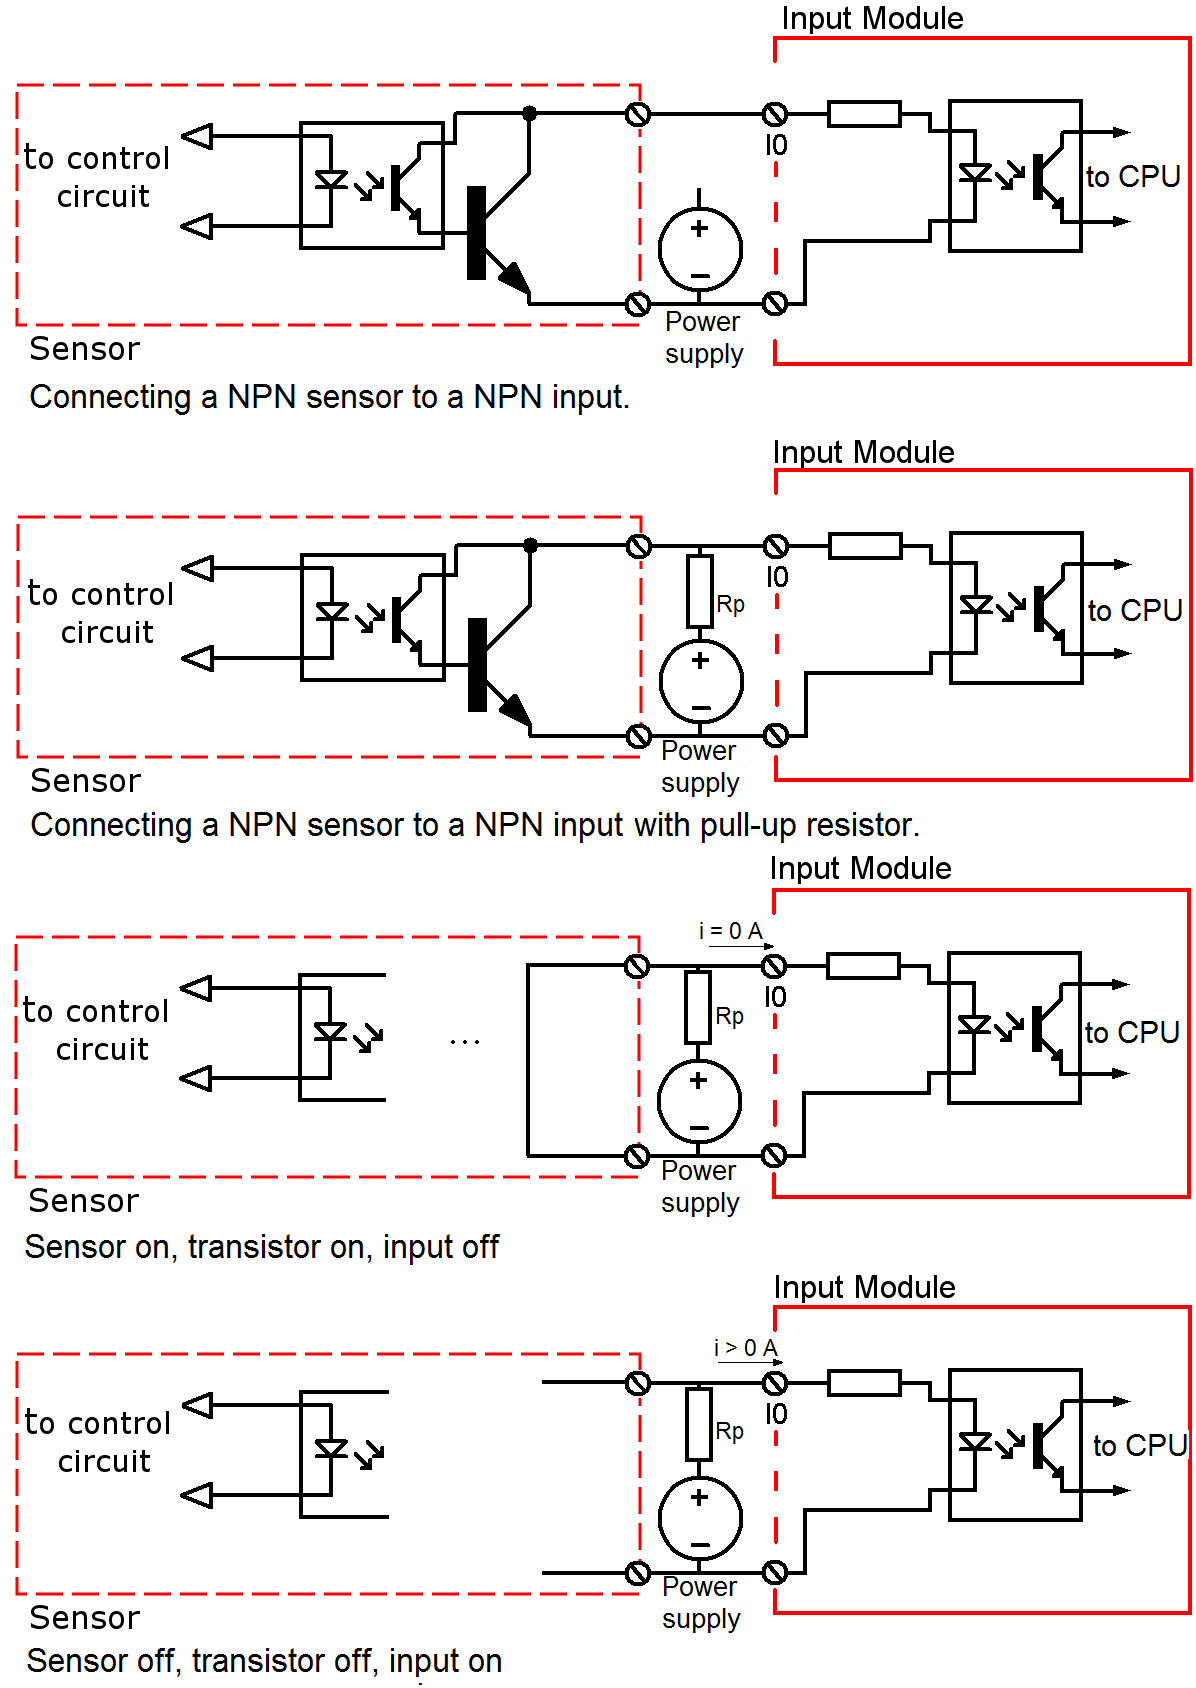 Npn Vs Pnp Sensors Wiring Library Of Diagrams 2wire Proximity Sensor Diagram Can I Connect A To Input Control Real English Rh Controlreal Com Or